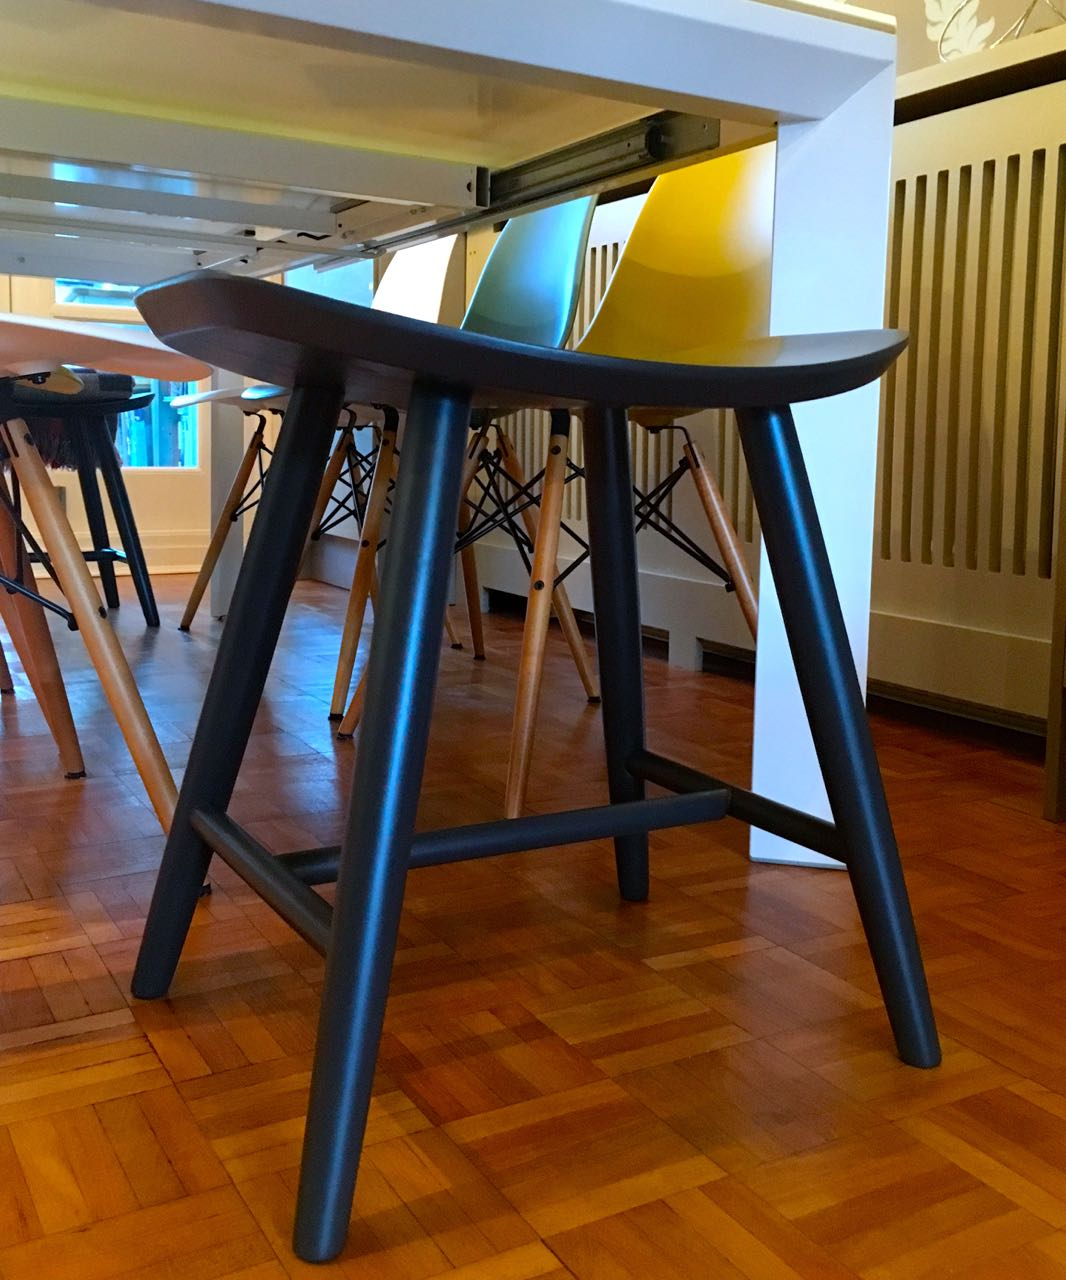 A closer look at one of the stools by Cult Furniture